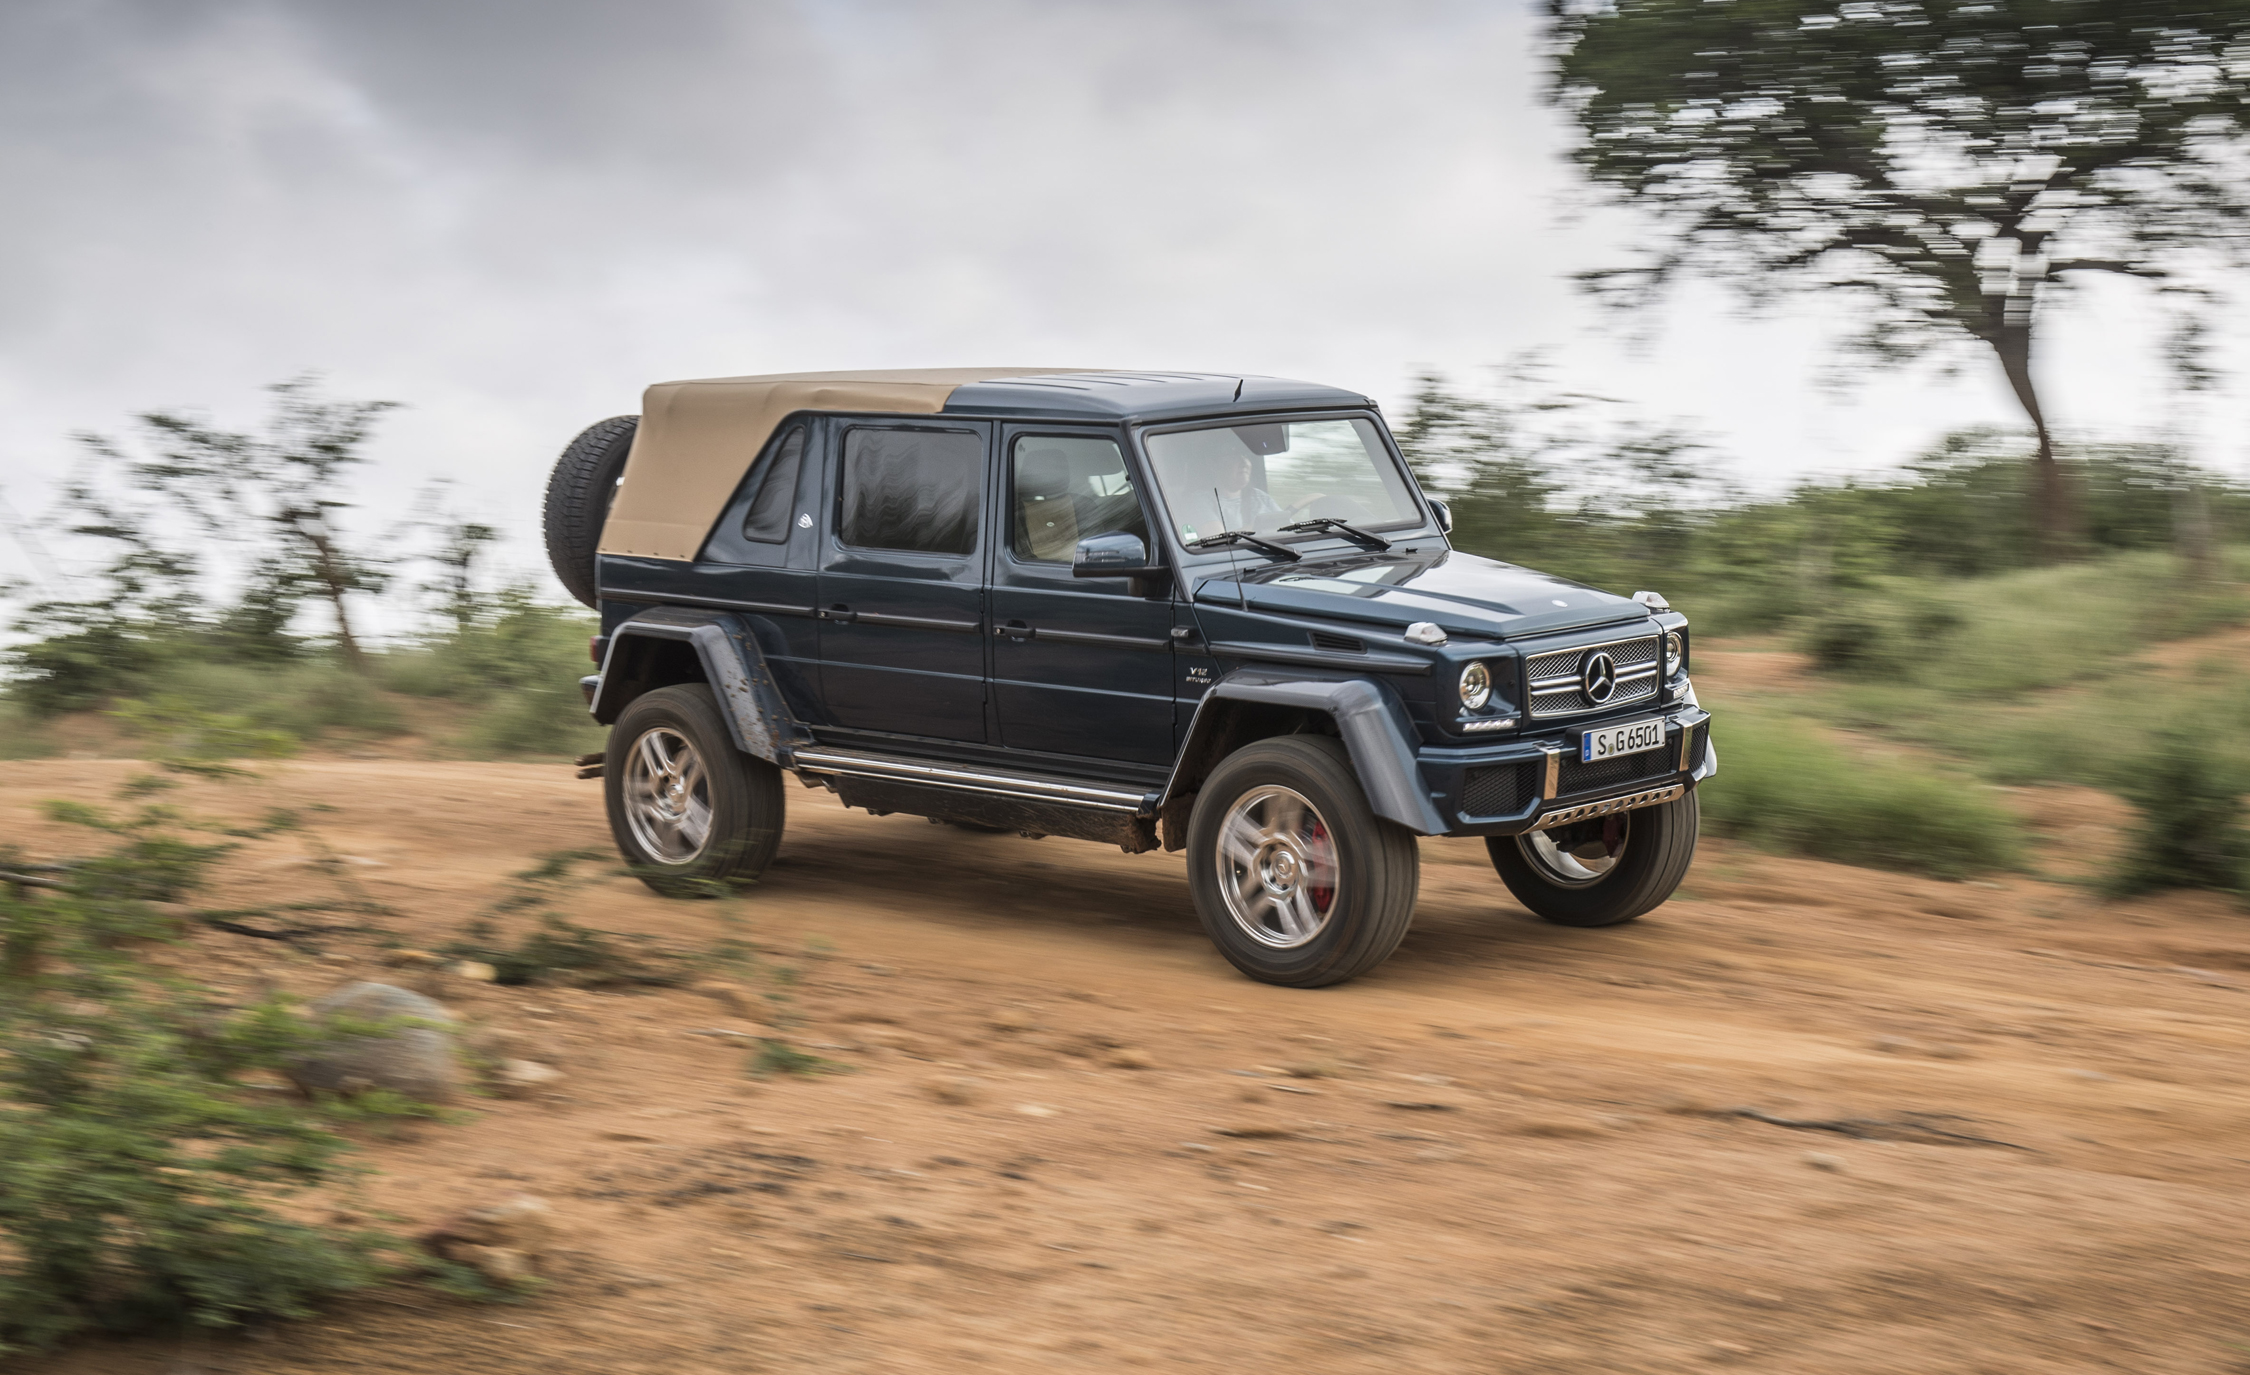 2018 Mercedes-Maybach G650 Landaulet Pictures Gallery (52 Images)